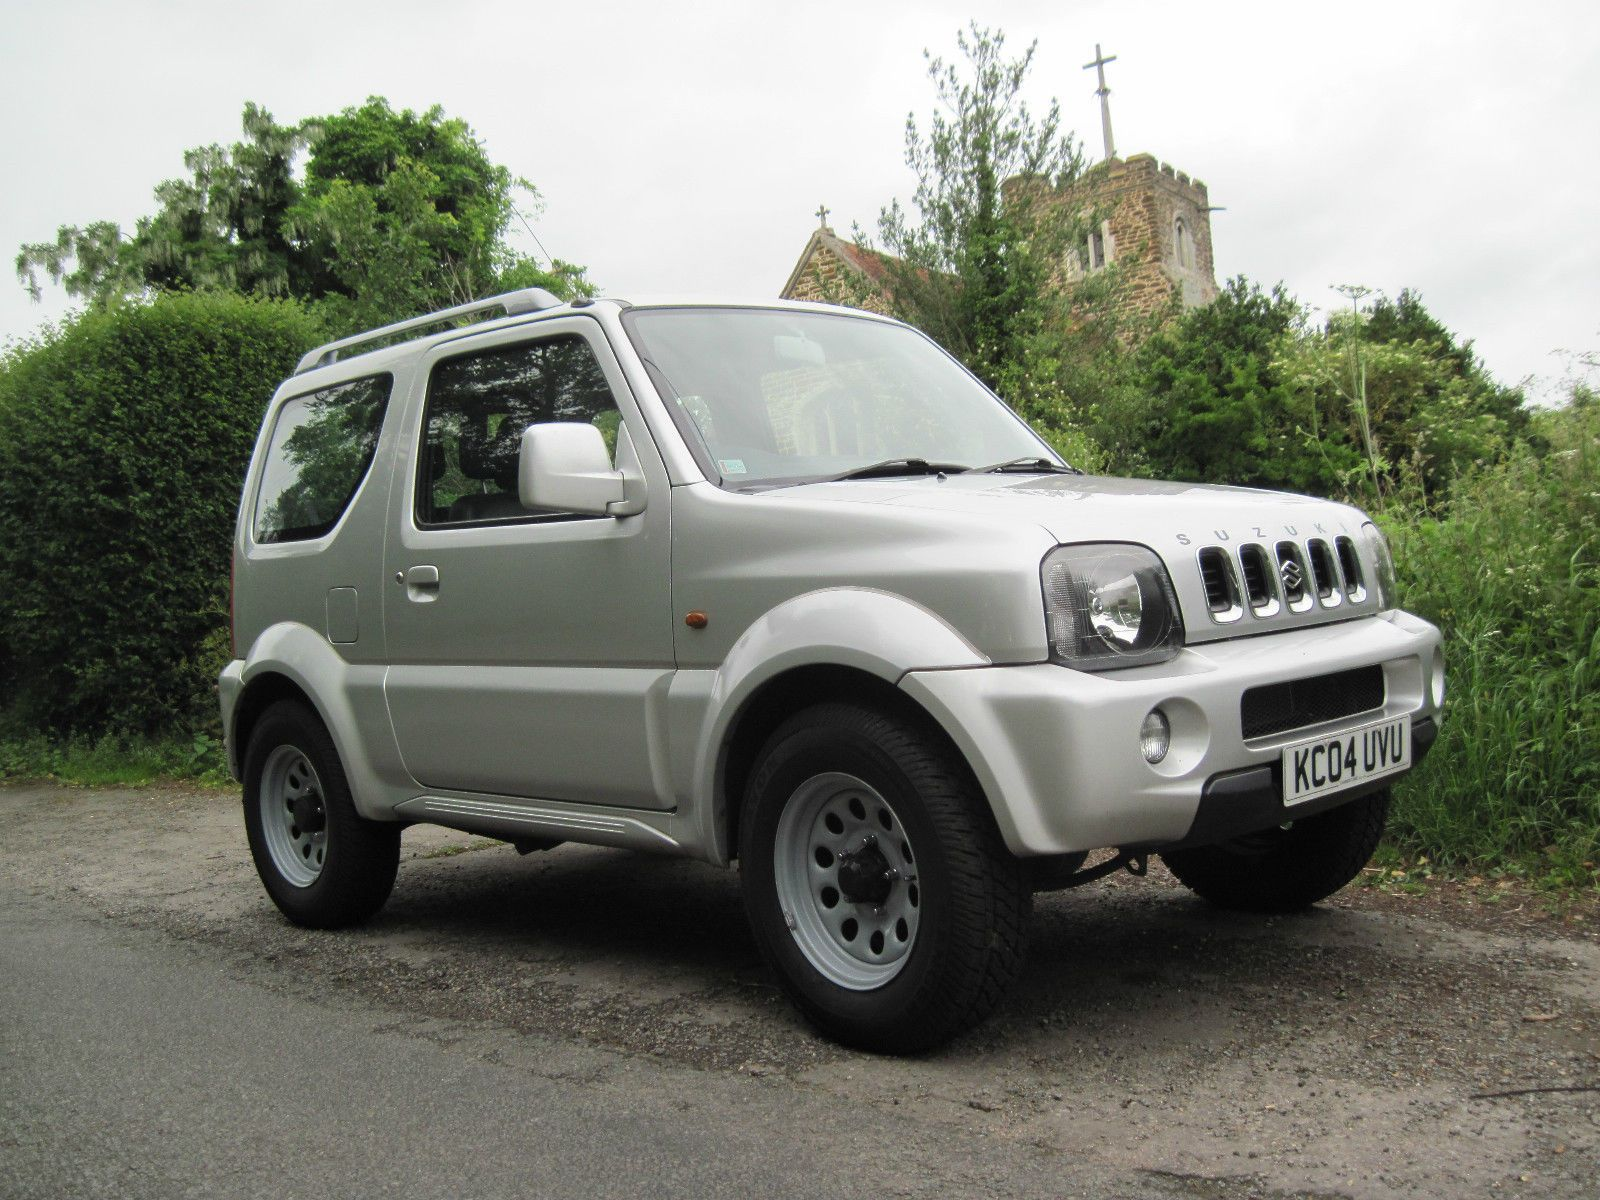 Suzuki jimny mode automatic 2004 silver one owner from new me